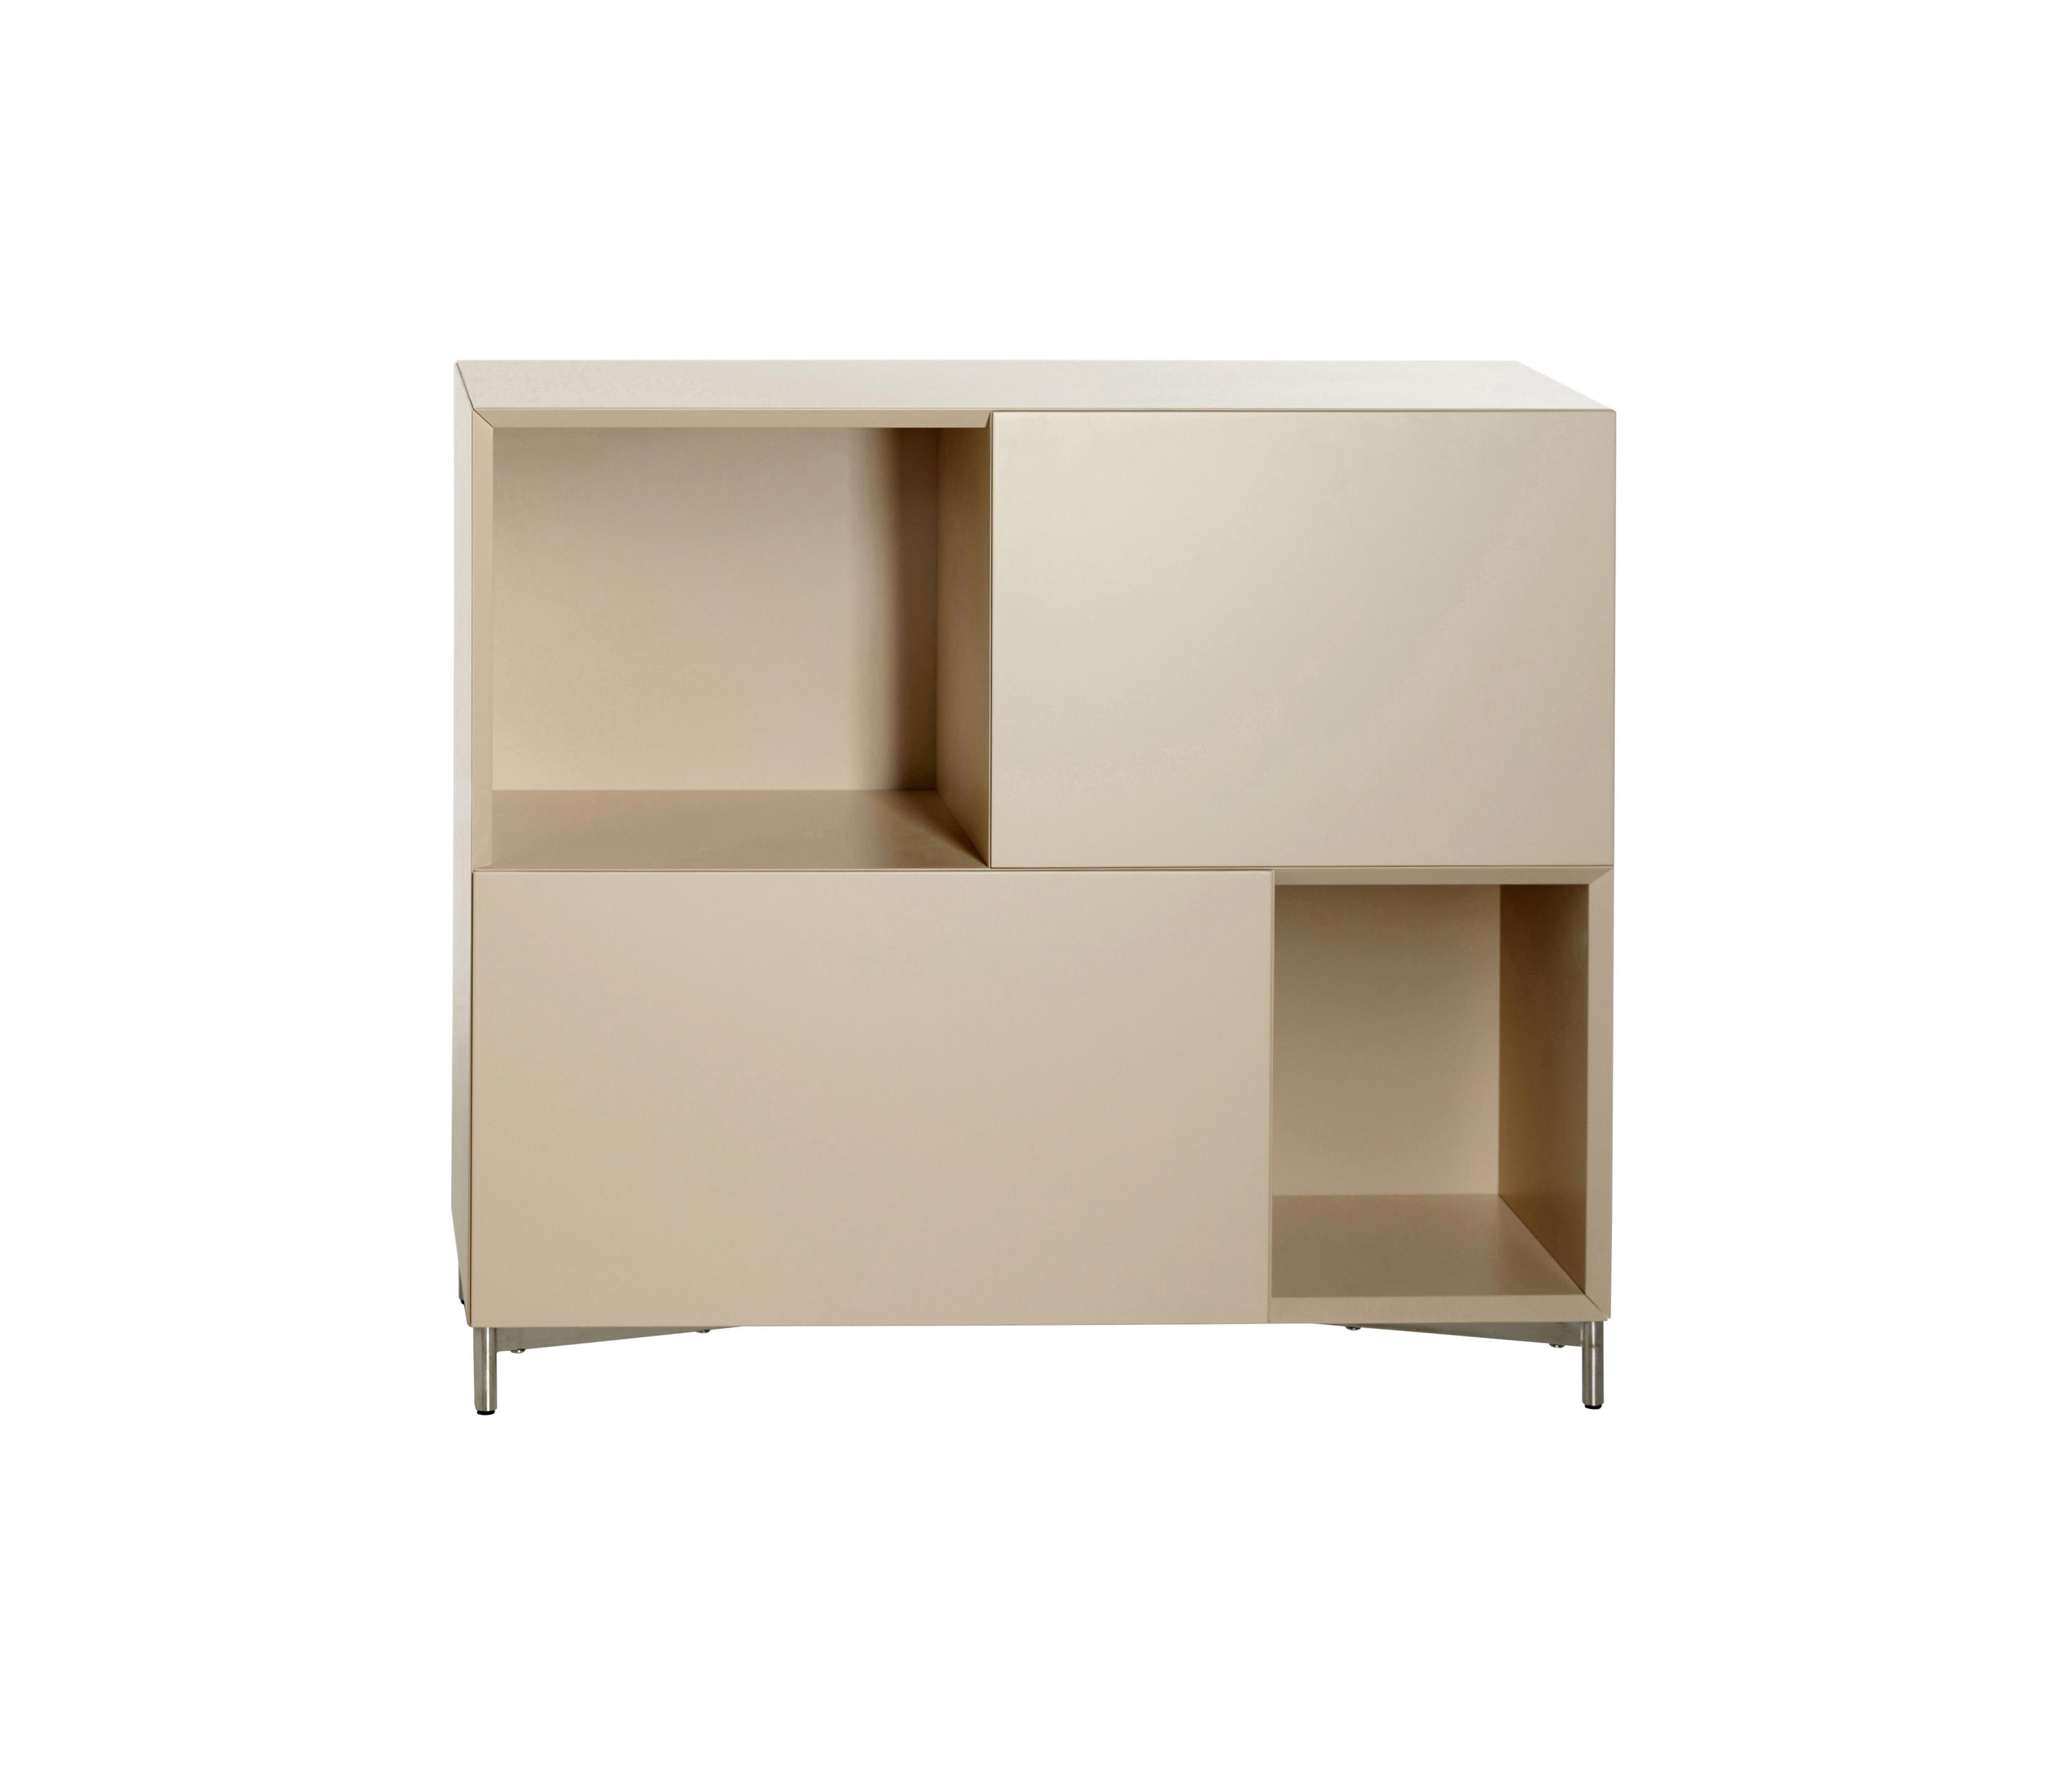 Ad Box 024/mb – Sideboards / Kommoden Von Potocco | Architonic Throughout Current Phyllis Sideboards (#1 of 20)